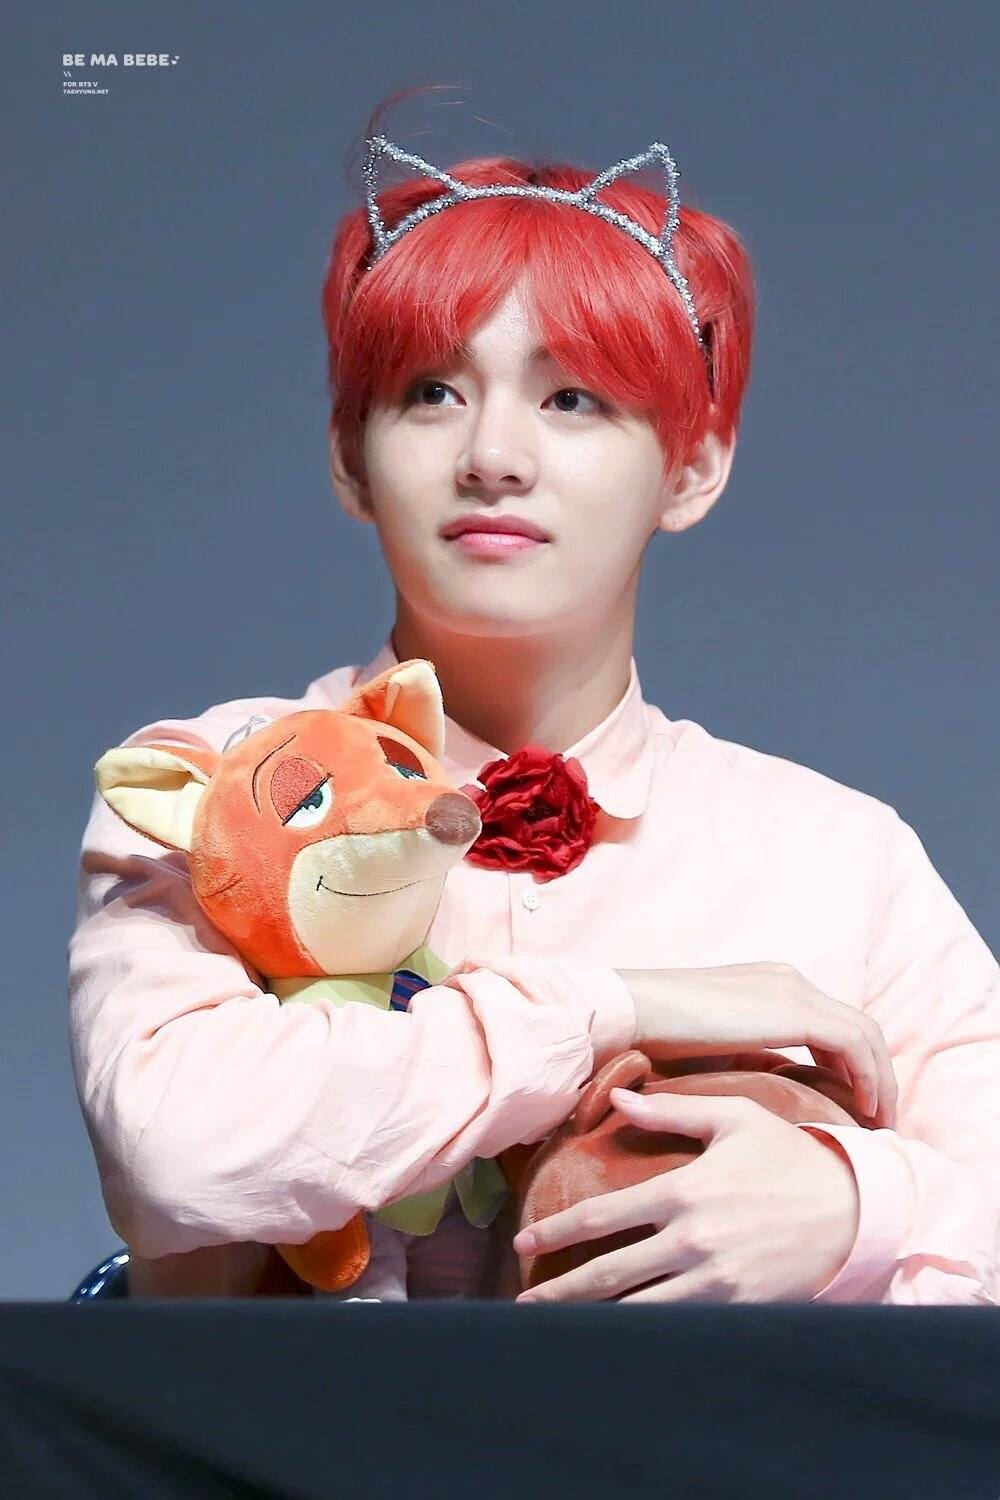 Taehyung holding a soft toy.